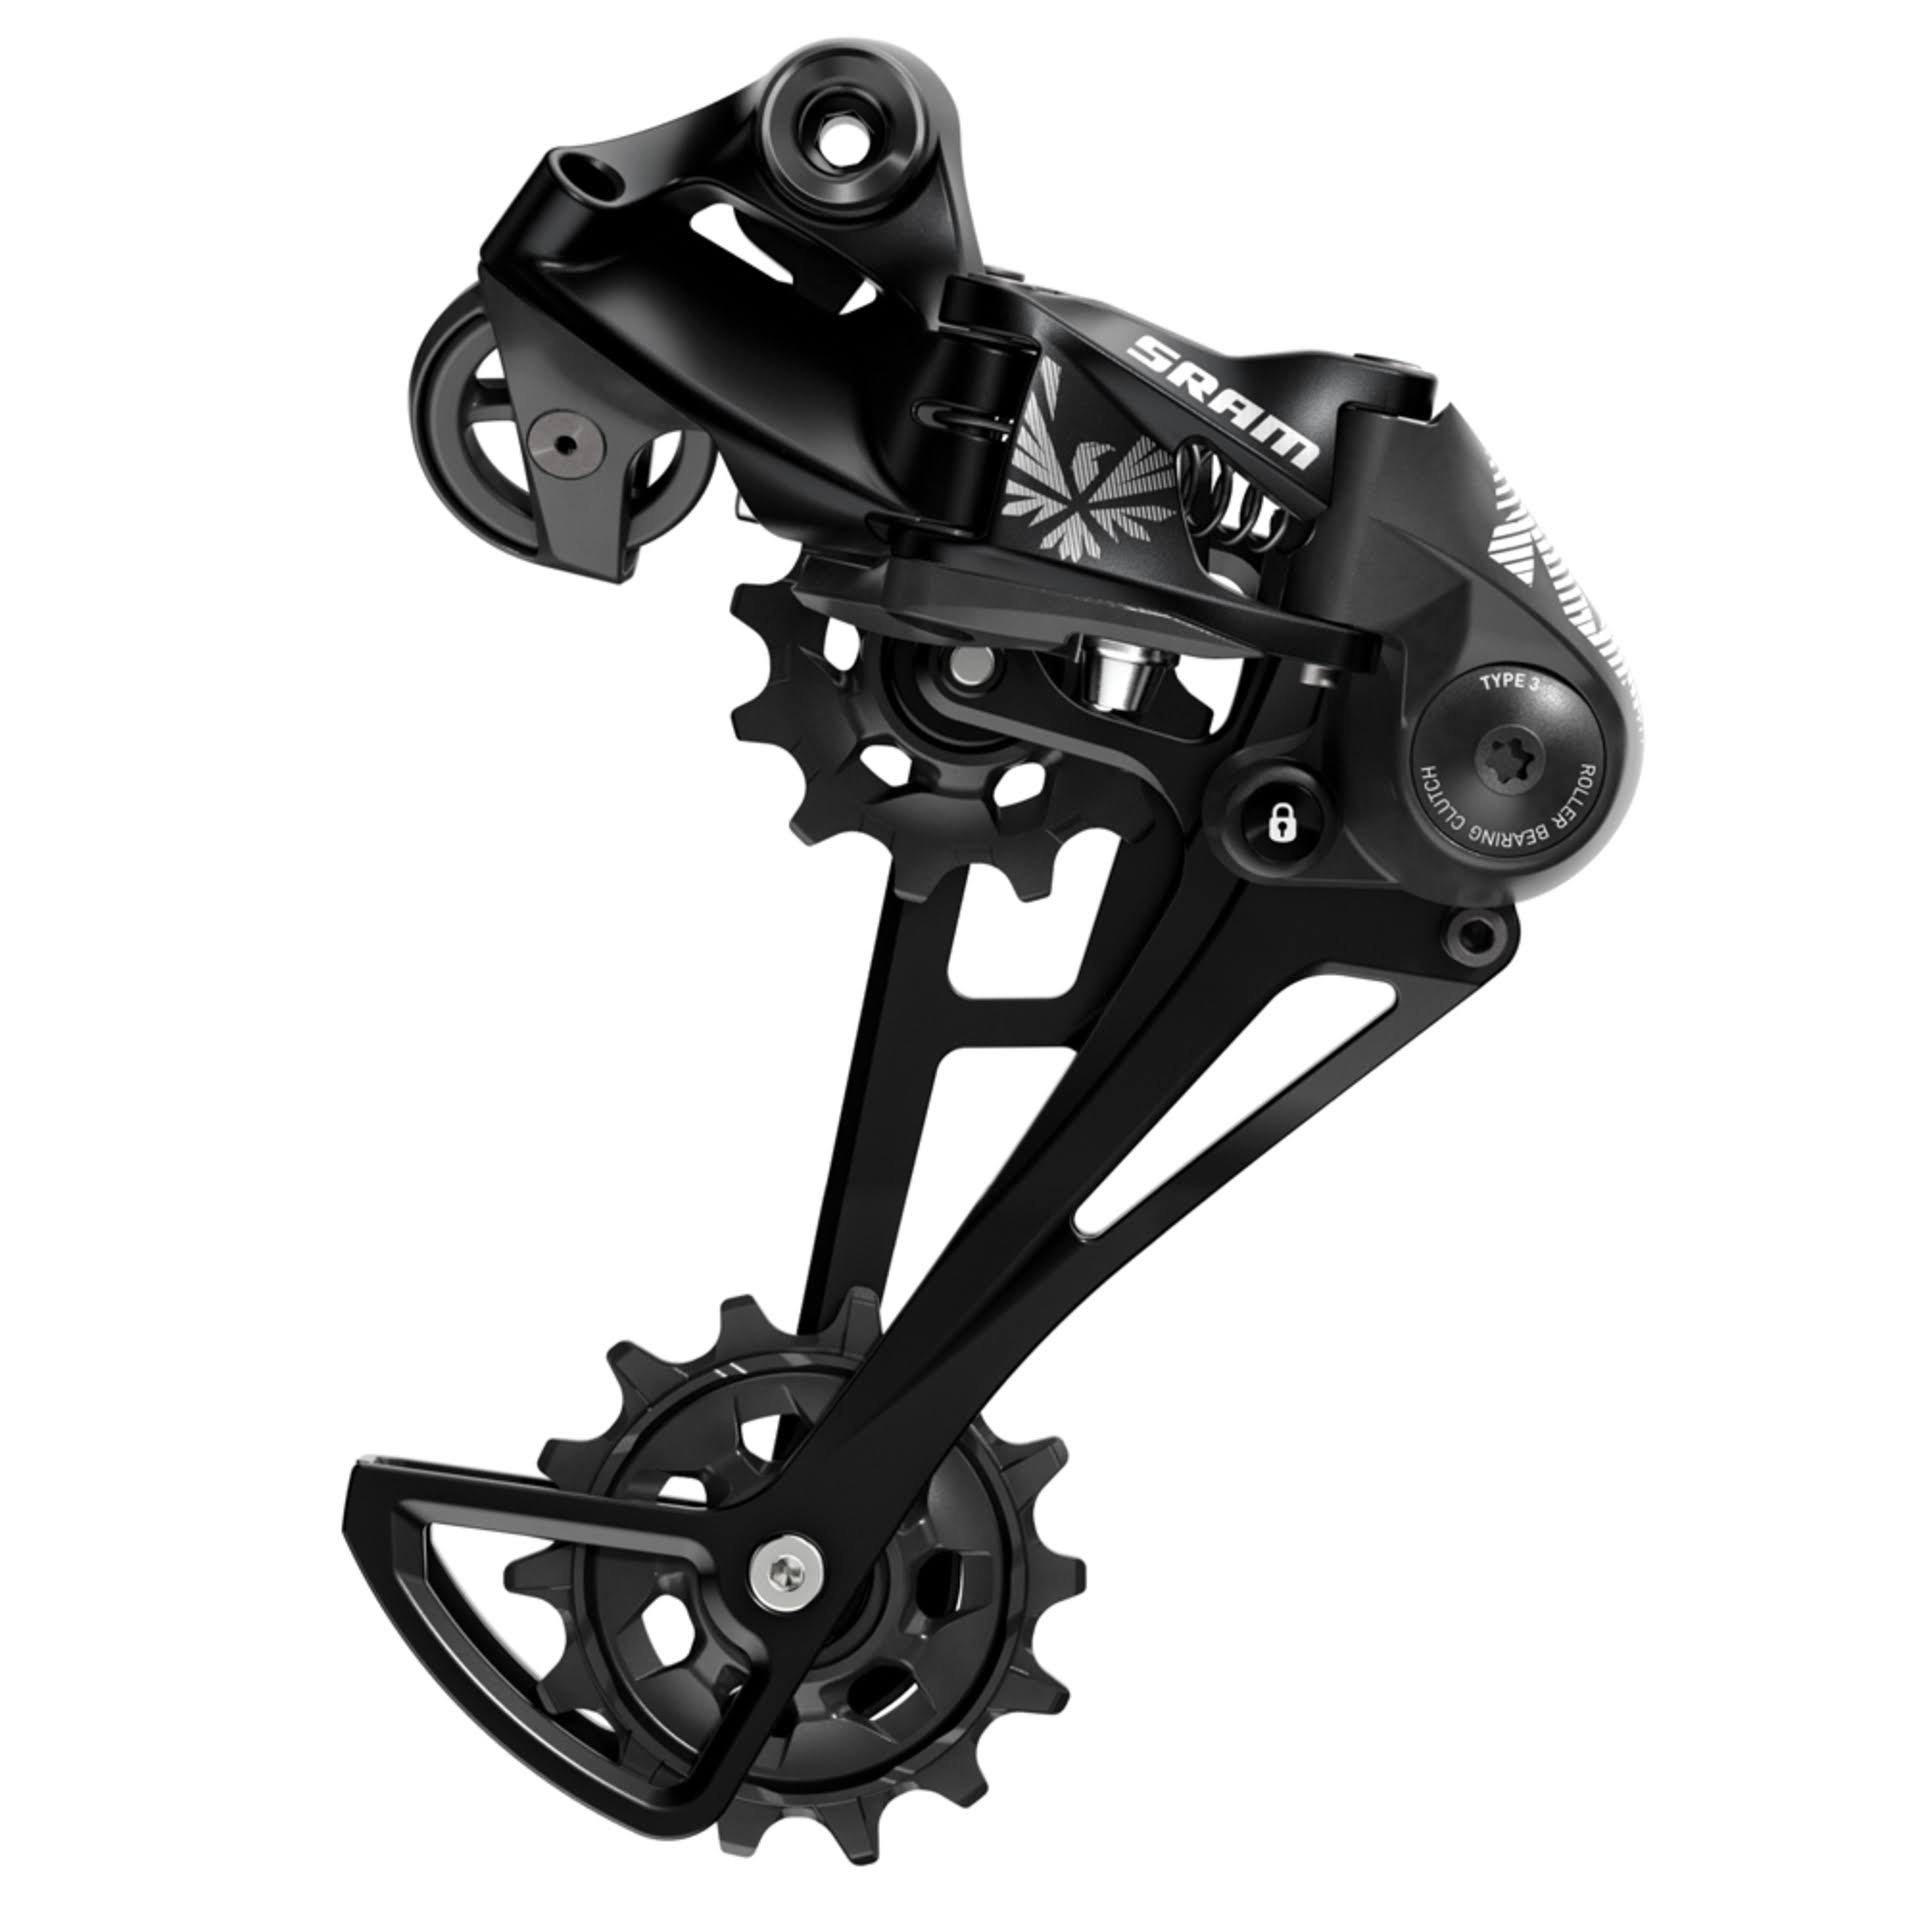 Sram NX Eagle Mountain Bike Rear Derailleur - 12 Speed